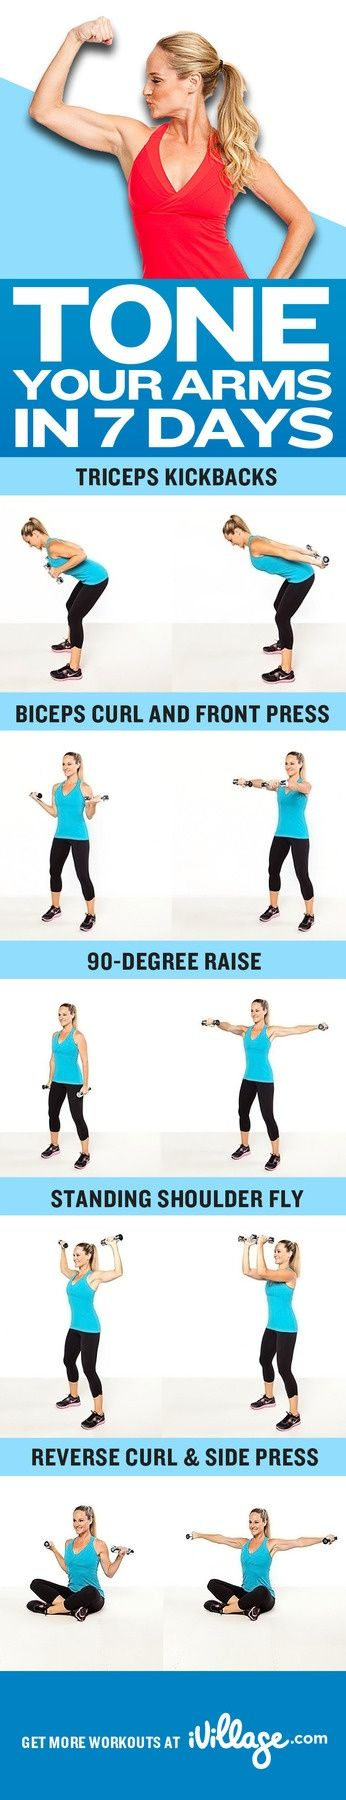 Arm workout!